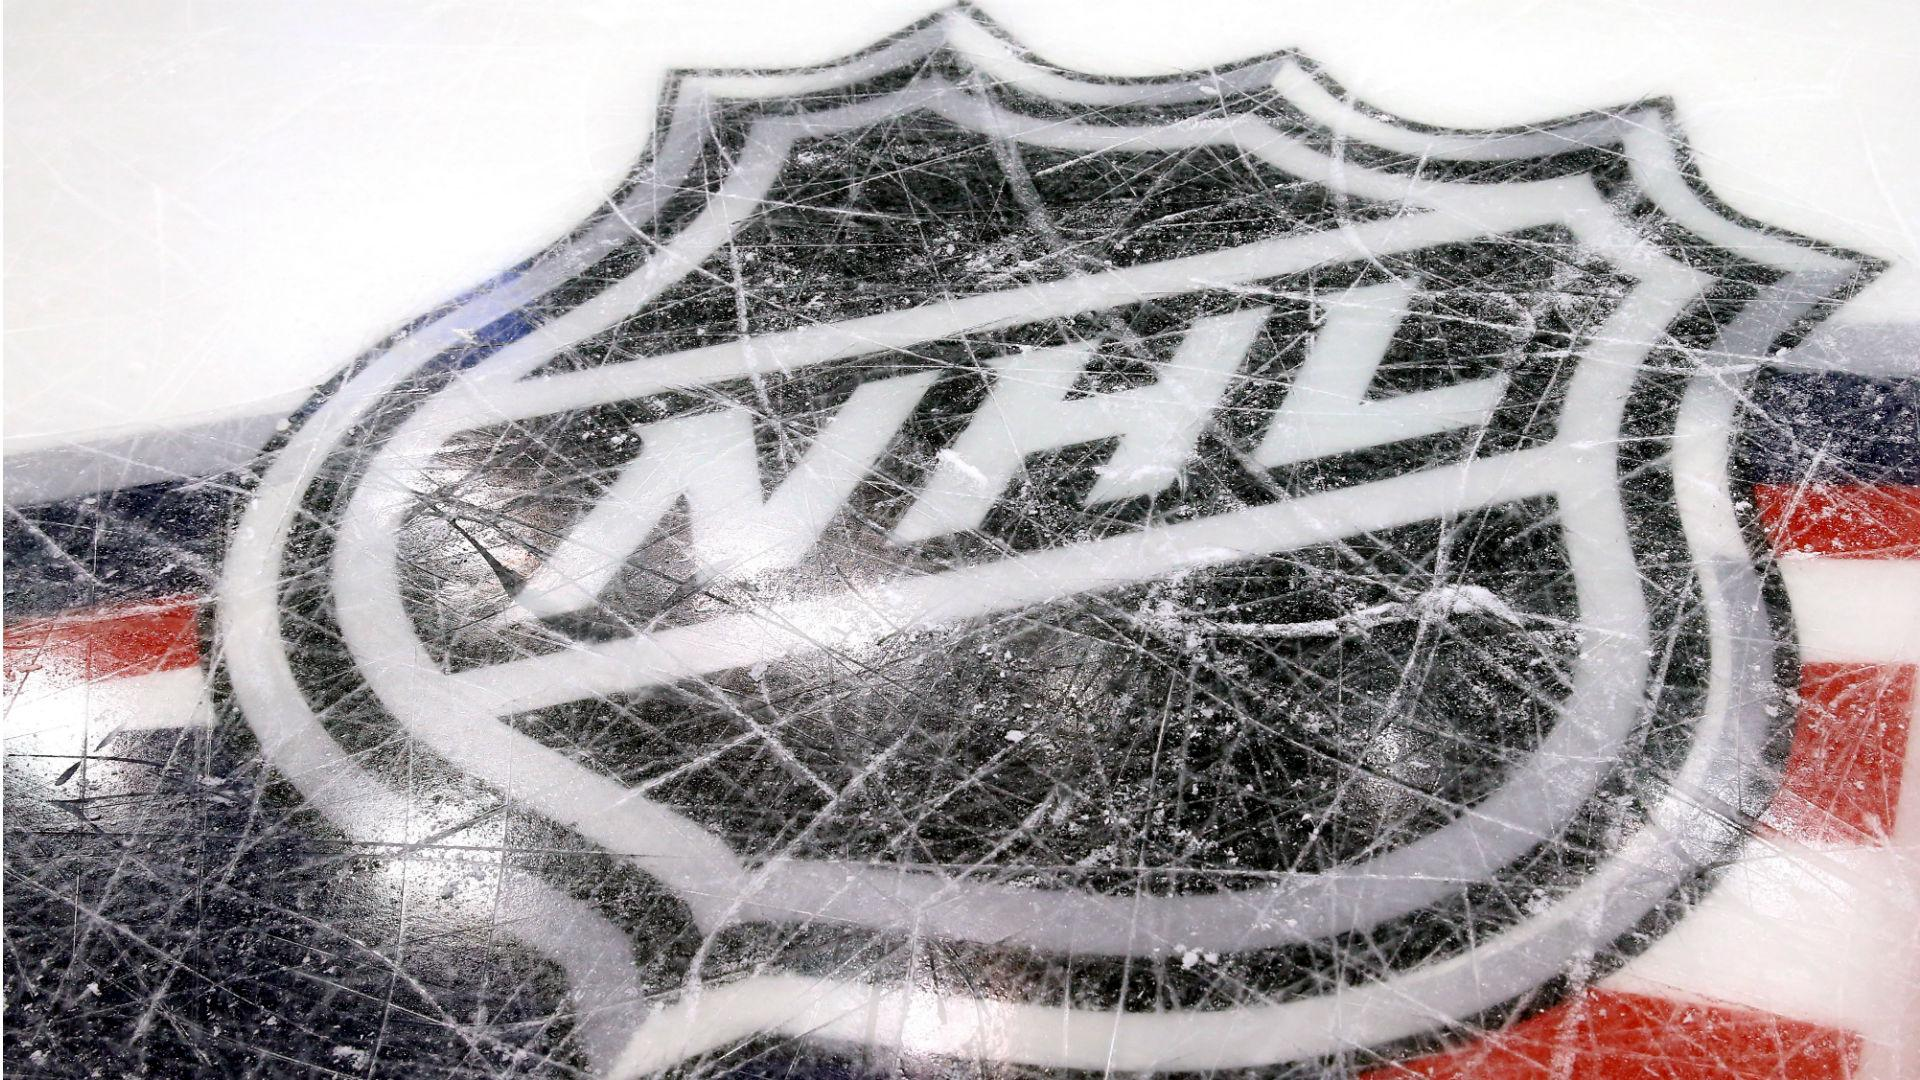 NHL STANDINGS PREDICTIONS FOR THE 2018/19 SEASON: CENTRAL DIVISION